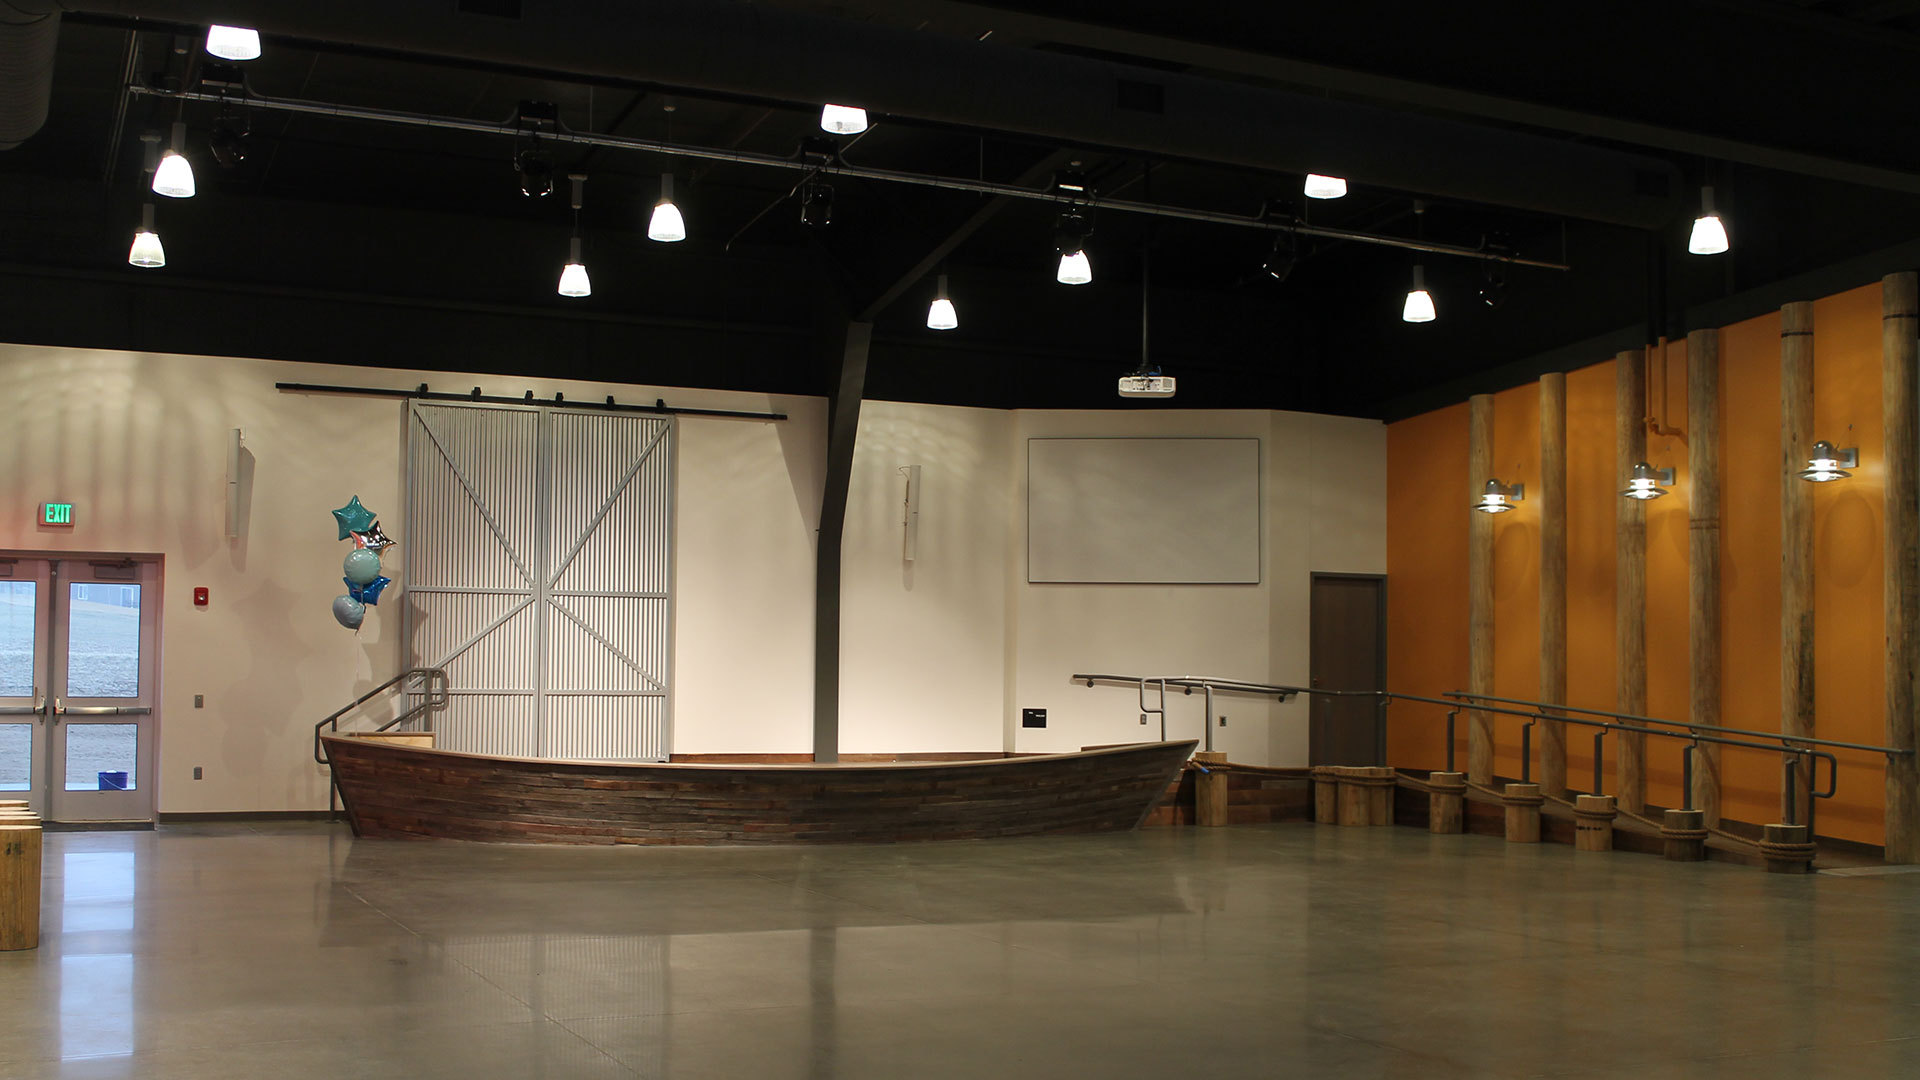 Stage designed as boat with ramp in WE Kids area at The Water's Edge Church in Omaha, NE